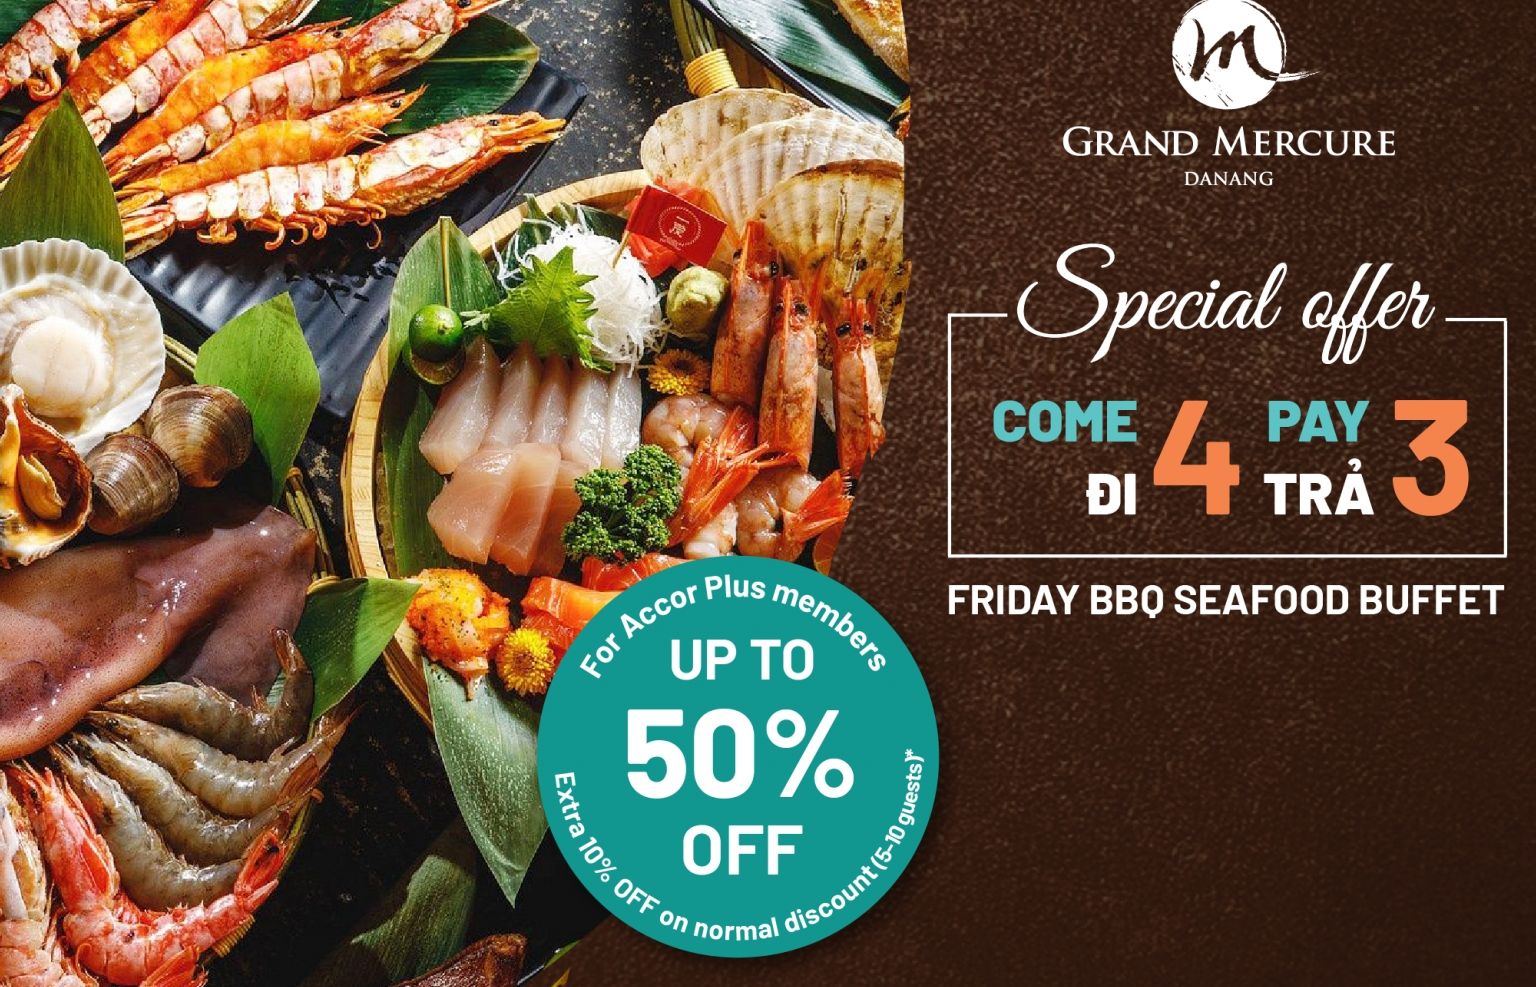 """""""Dine 4 Pay 3"""" Friday BBQ seafood buffet at Grand Mercure Danang"""